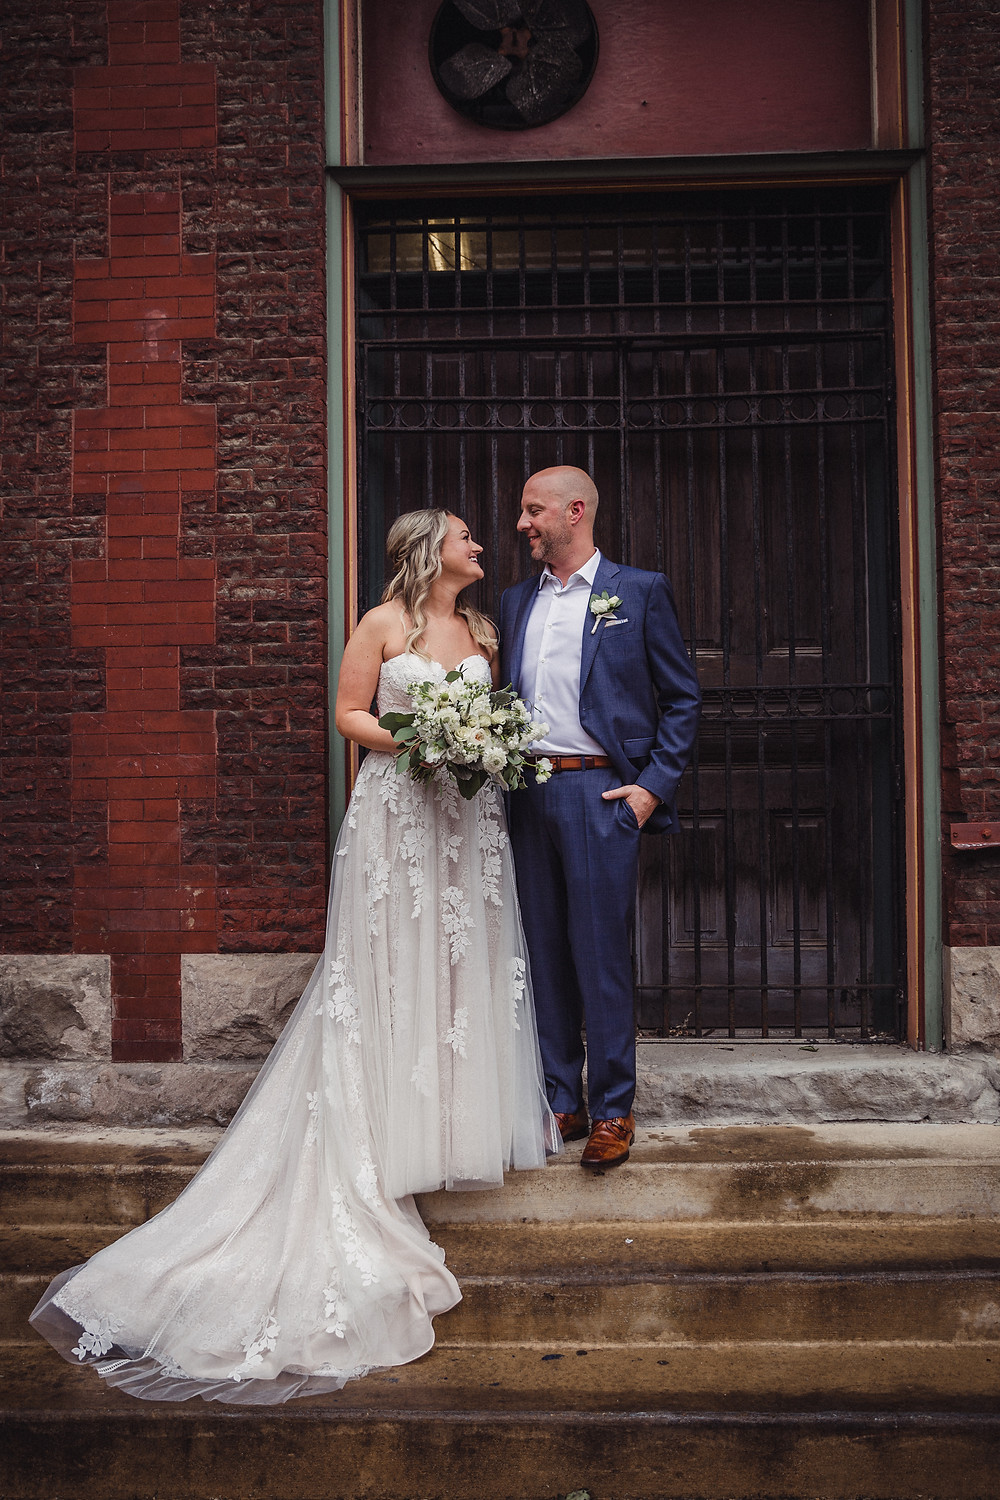 Bride and Groom on the steps of a nearby urban brick building